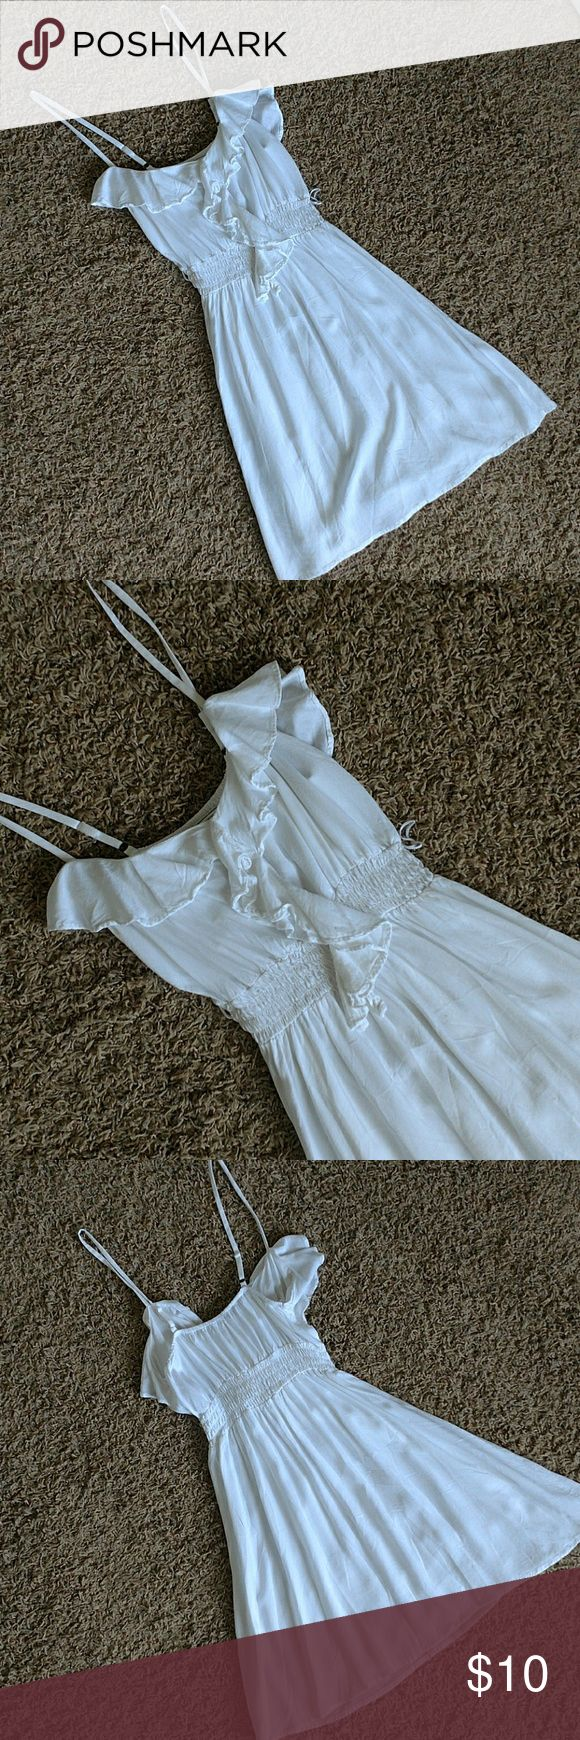 🎊SALE Body Central White Spaghetti Strap Dress *SALE WEEKEND ONLY* Perfect for summer white spaghetti strap dress. Ruffled top, cinched? waist mini. *Very small imperfection on front of dress not noticeable, see pictures. Body Central Dresses Mini